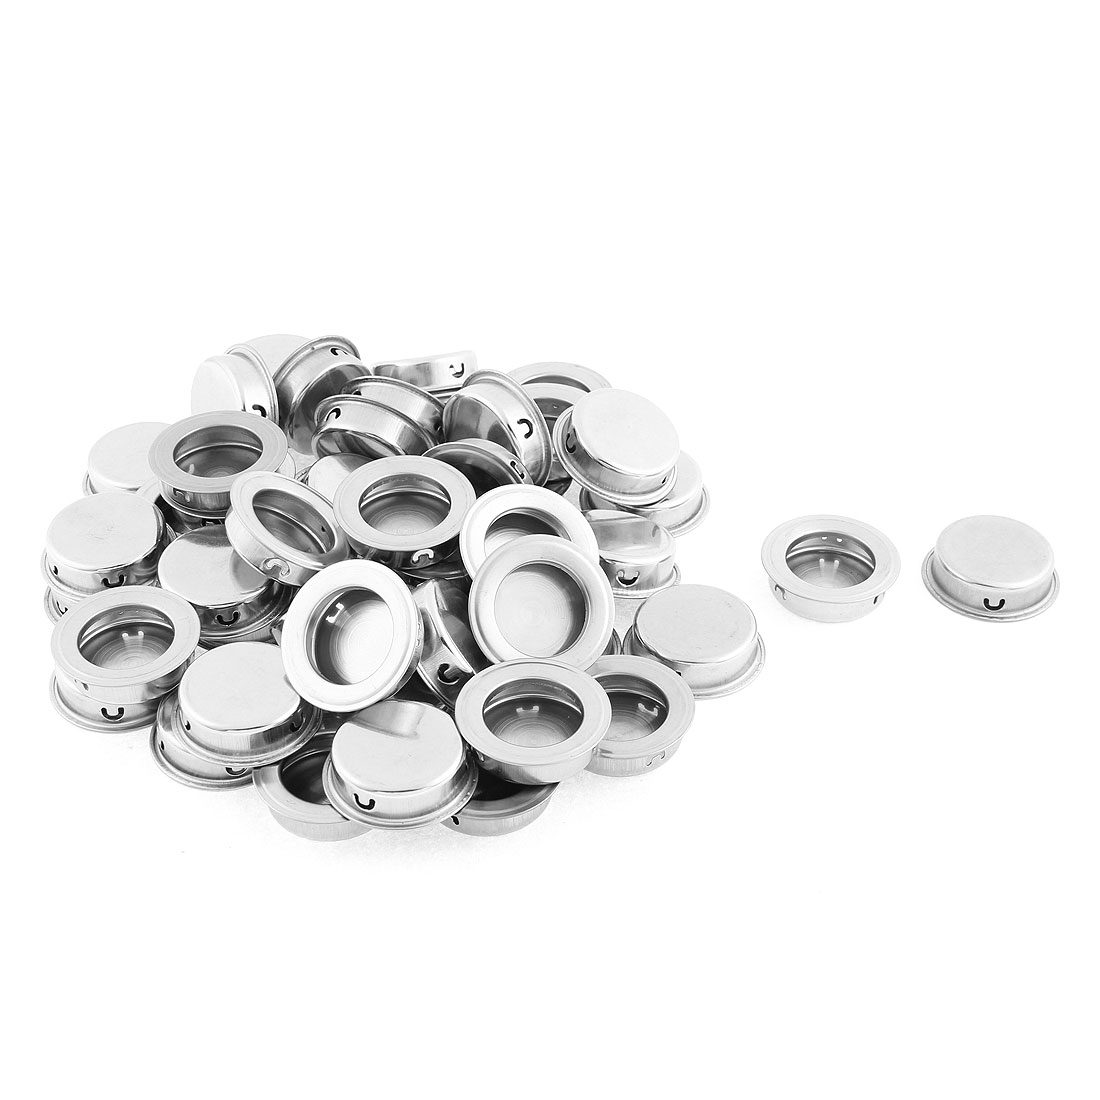 50pcs Stainless Steel Round Flush Pulls Drawer Slide Door Concealed Handle 40mm